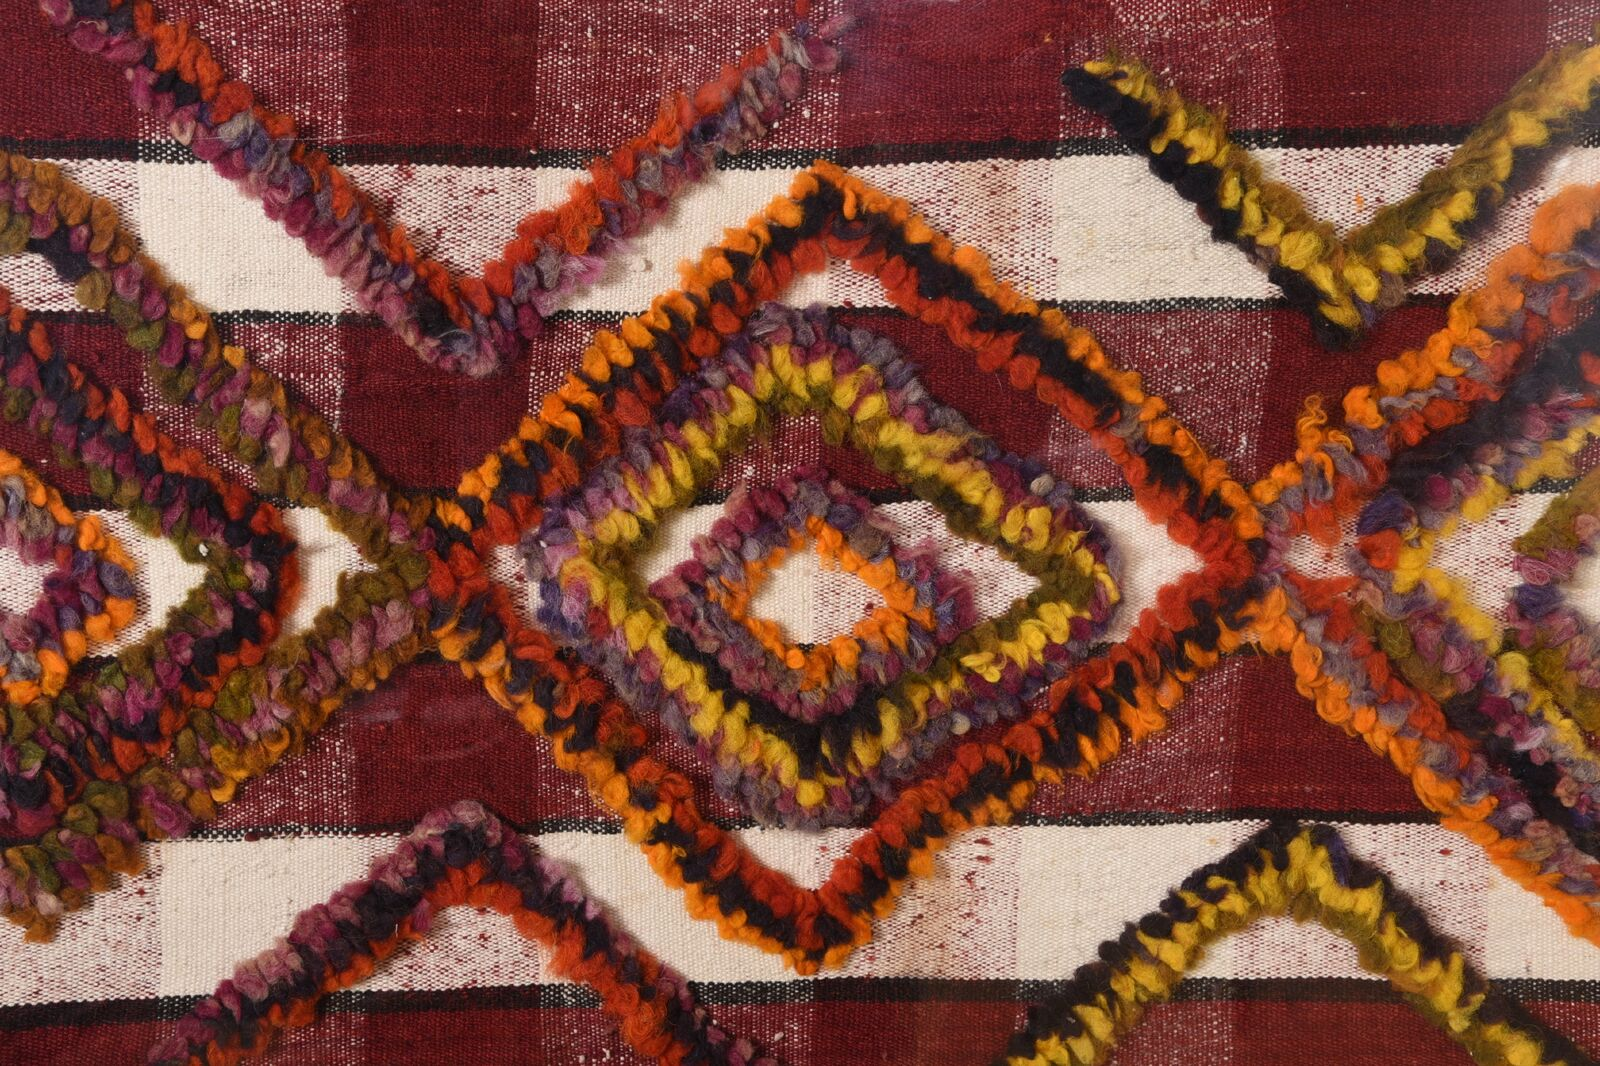 Large-Scale Framed 95″ x 63″ Textured Geometric Textile